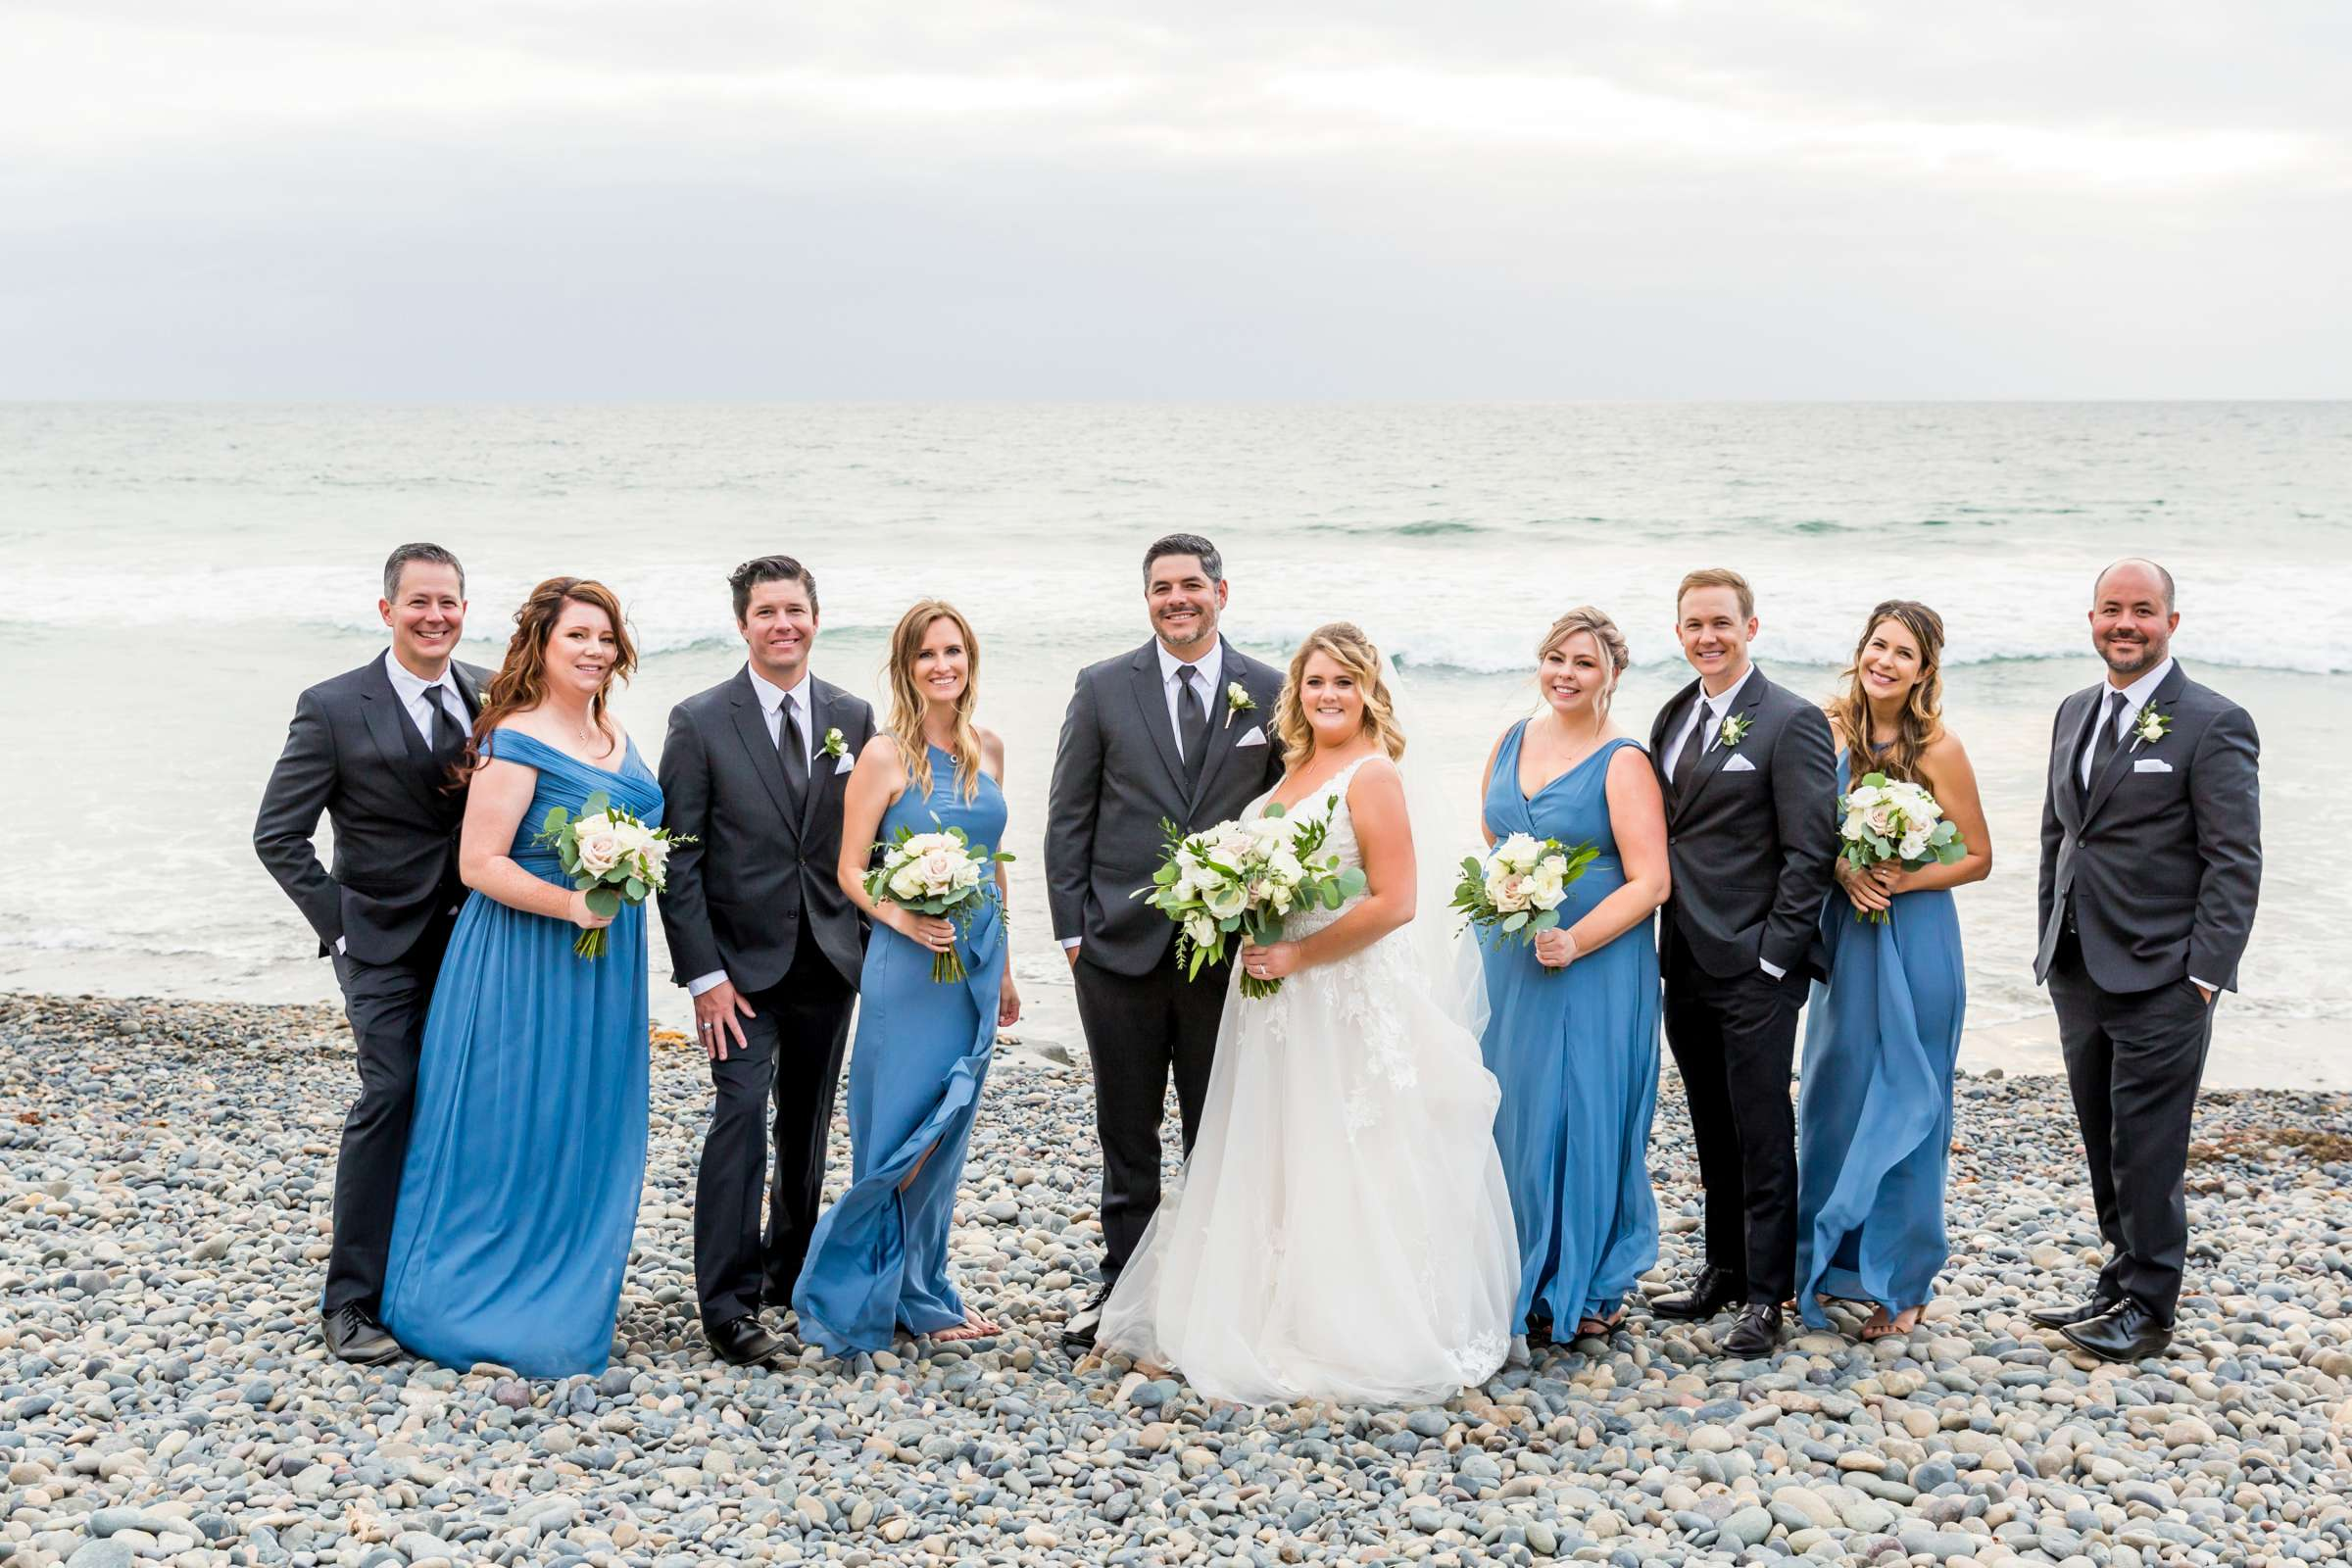 Cape Rey Carlsbad, A Hilton Resort Wedding, Michelle and Justin Wedding Photo #15 by True Photography